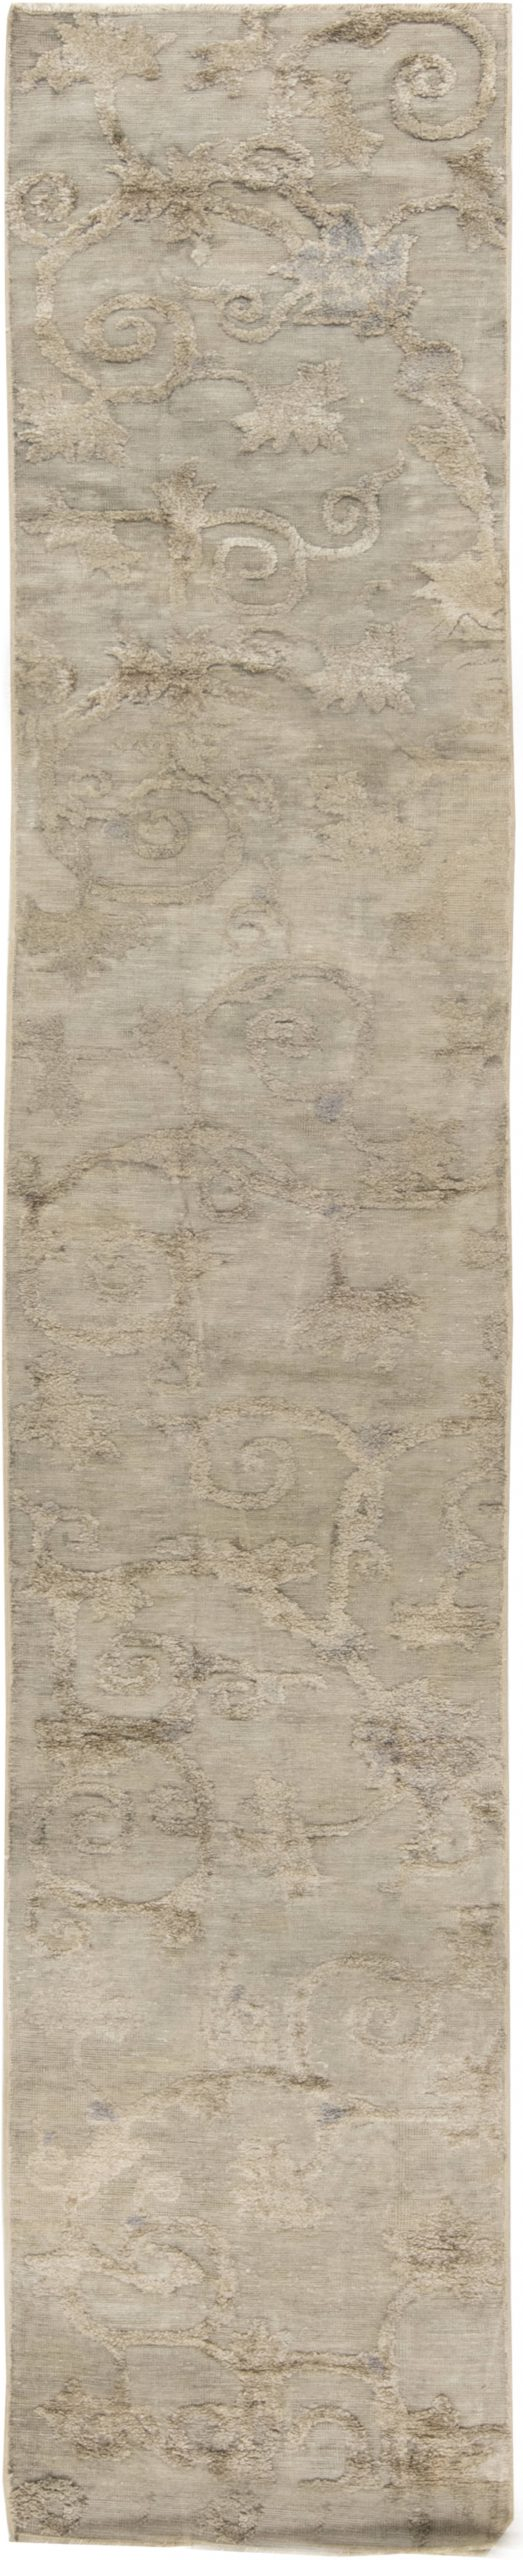 Antique Chinese Silver Beige and Blue Silk Runner Fragment BB6582